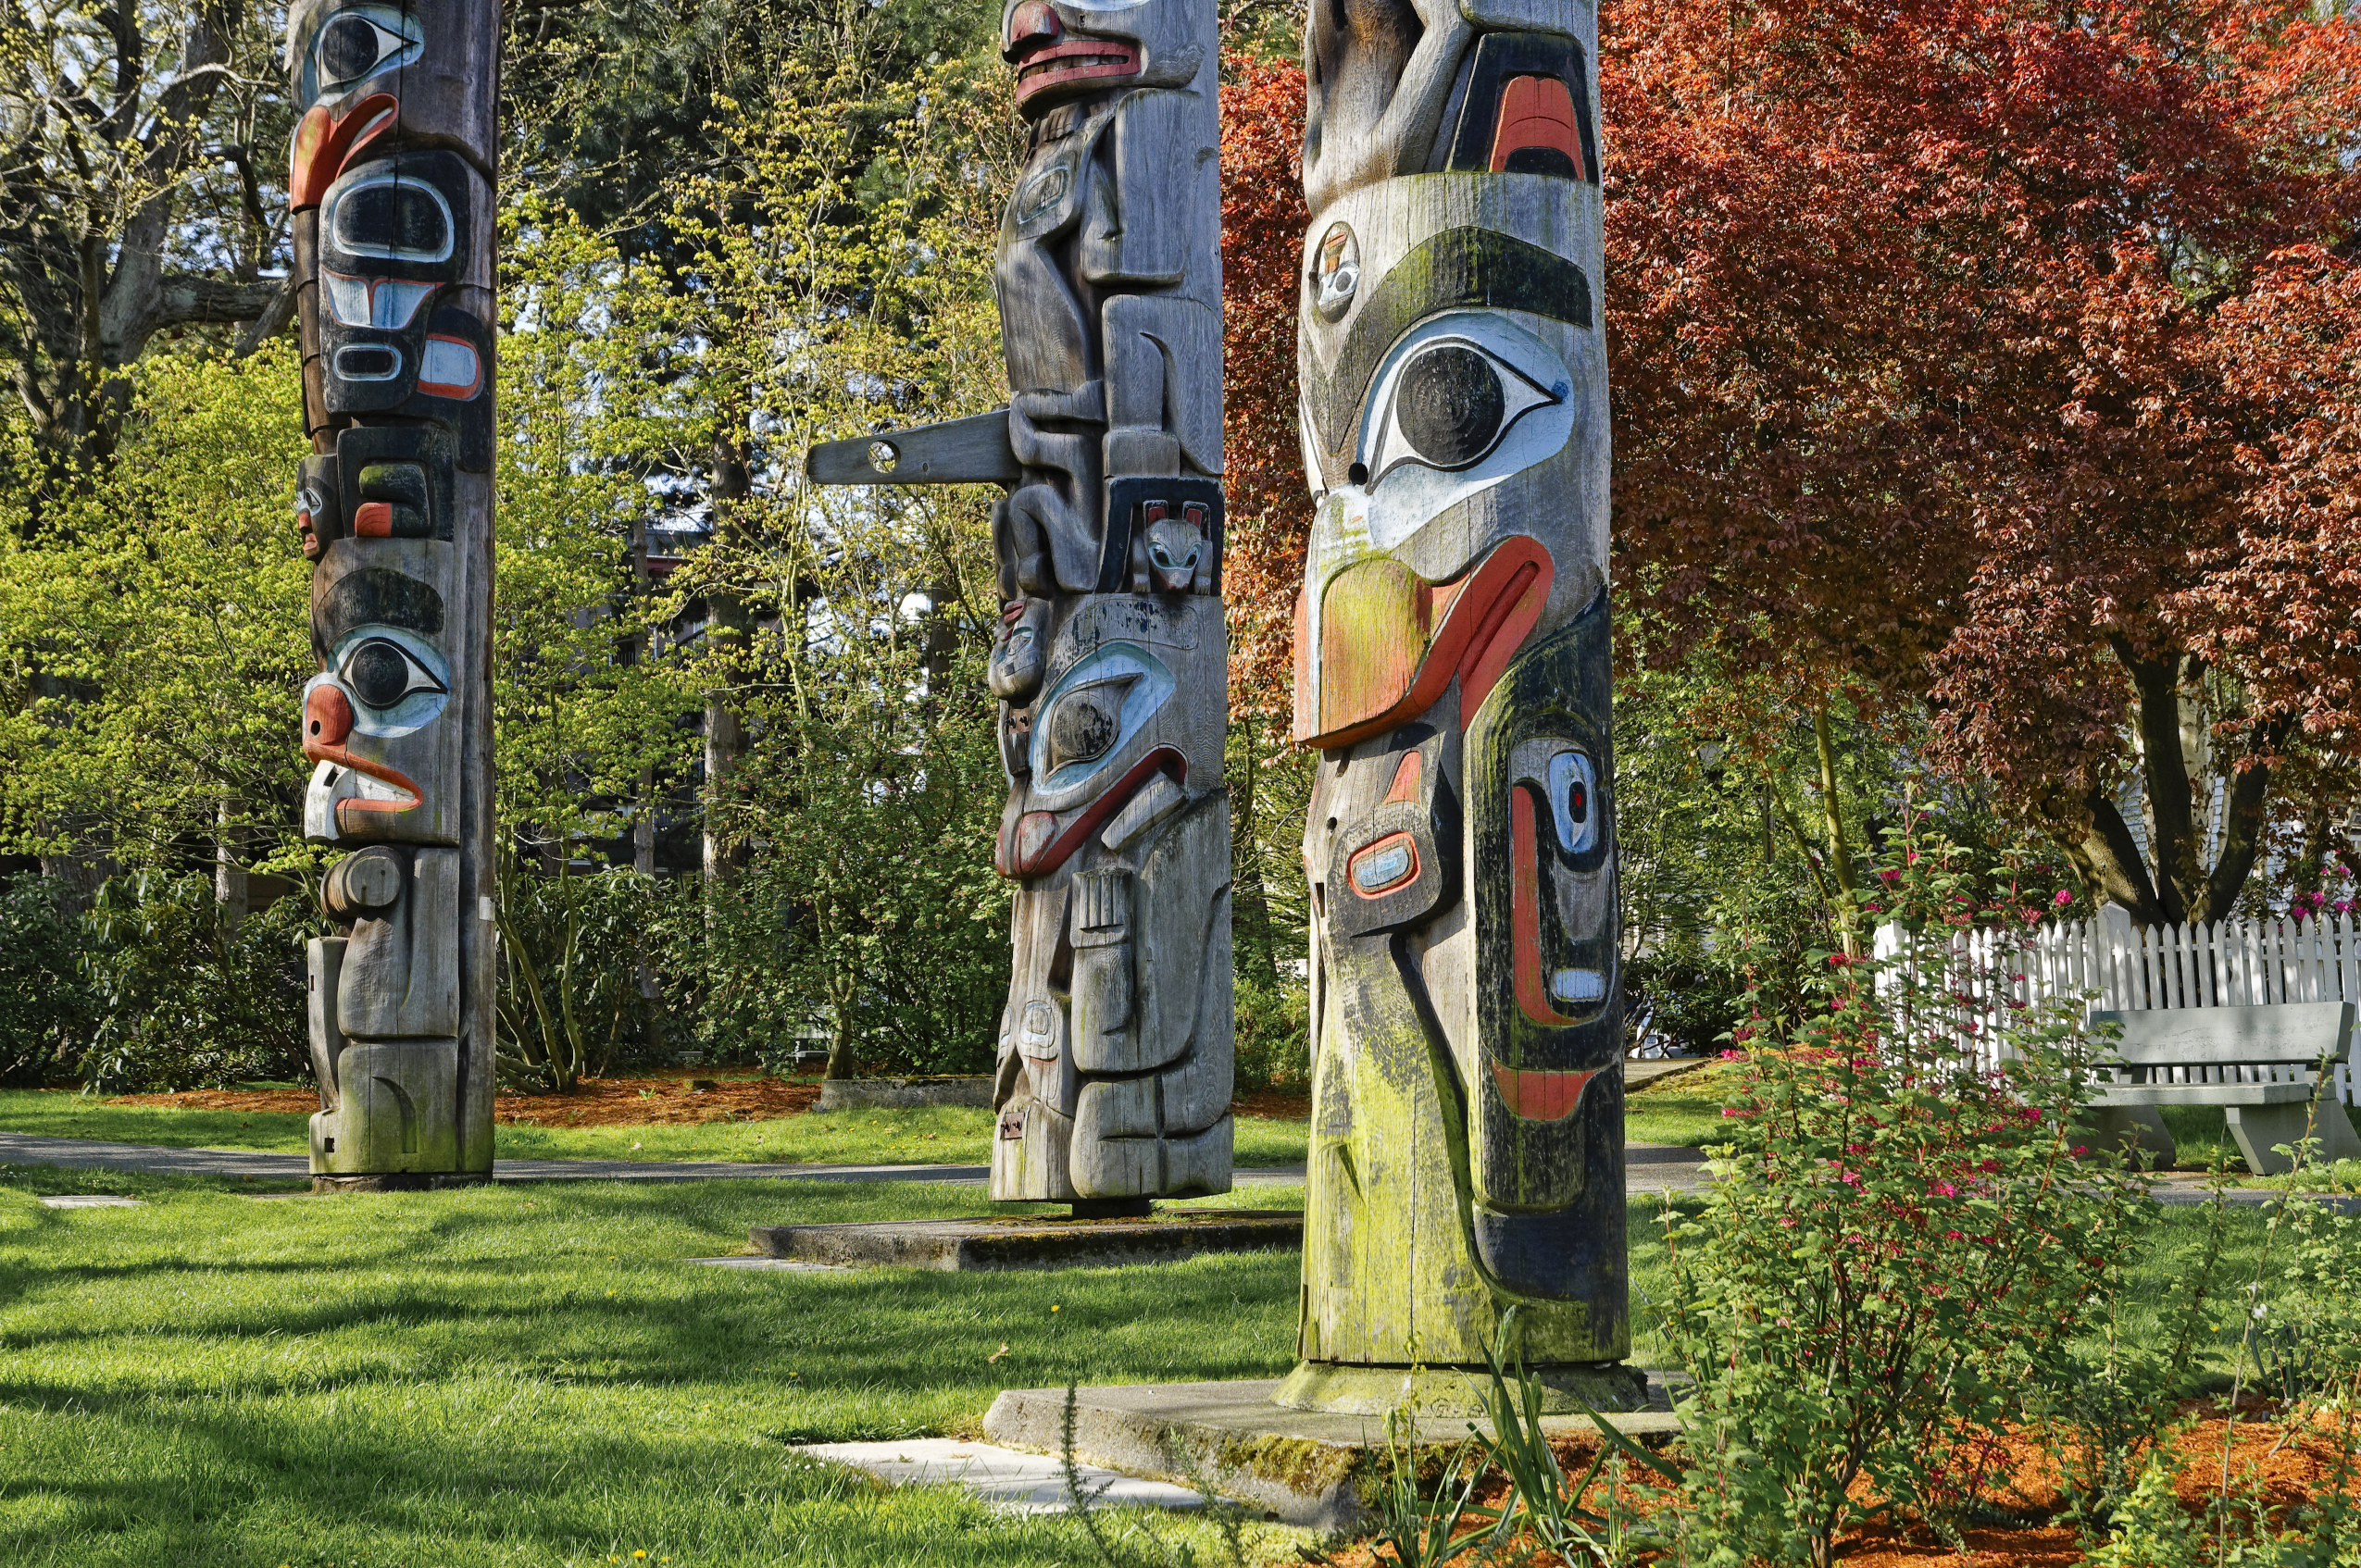 Victoria, Canada Attractions - Lonely Planet